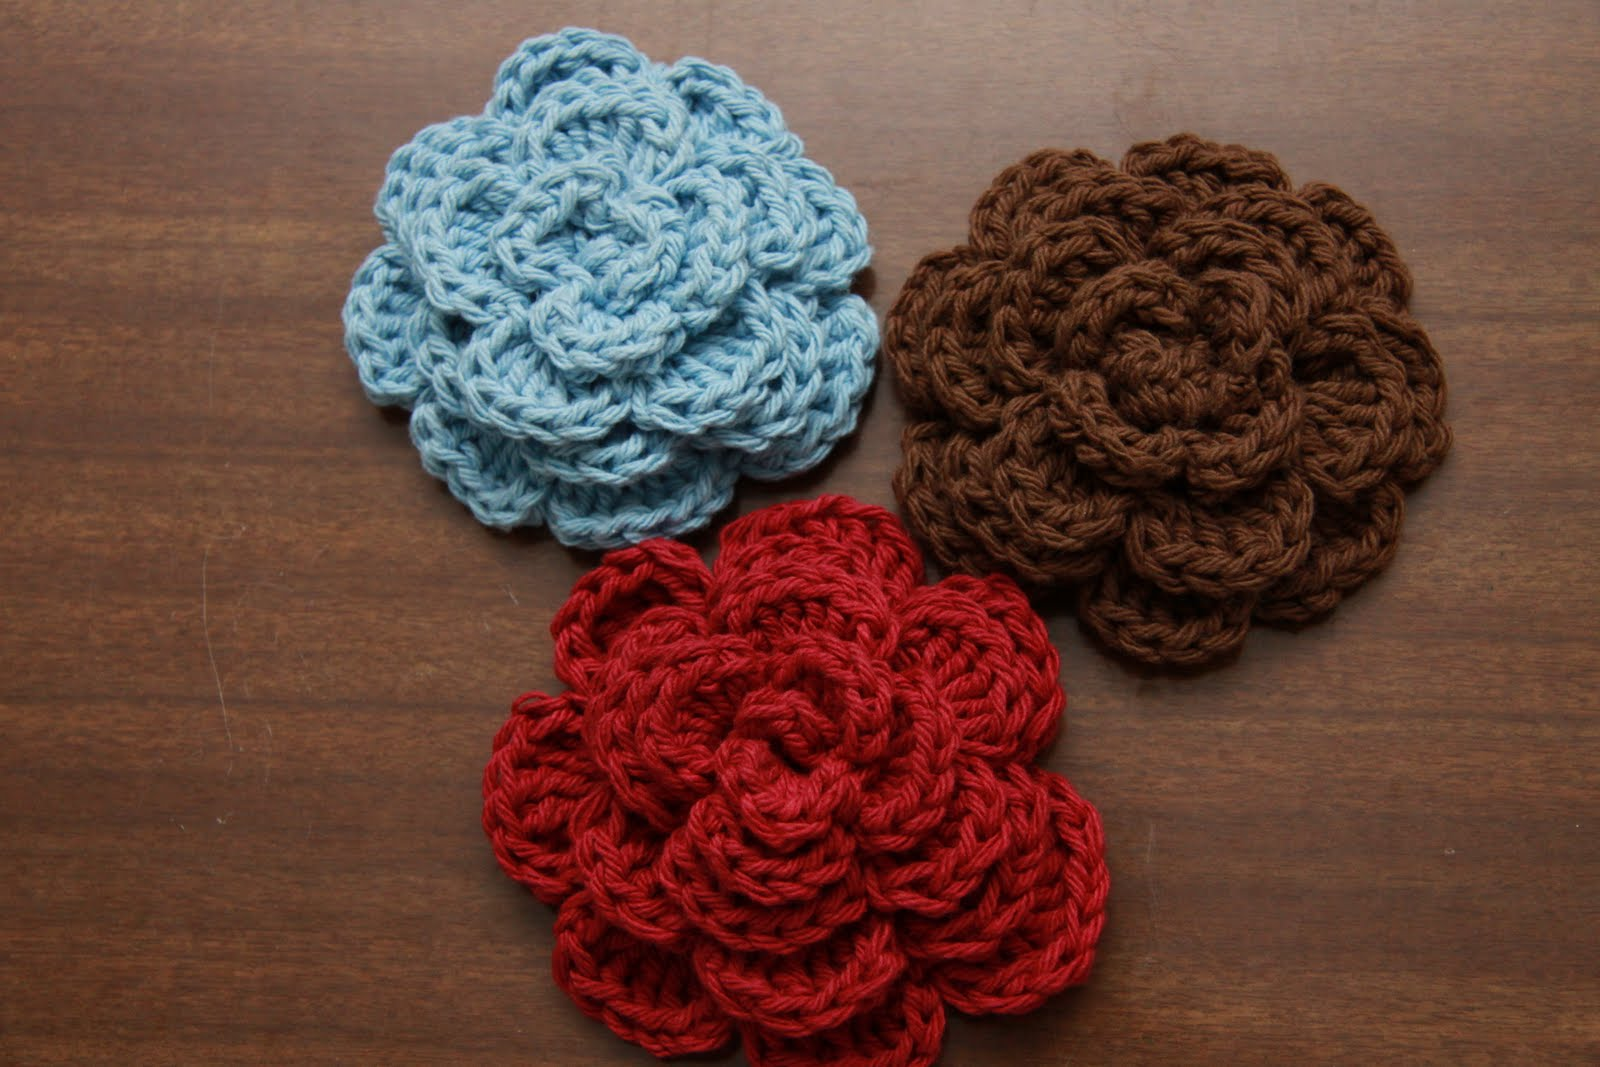 Crocheting Accessories : Crazy 4 Crafting: Crochet Hair Accessories